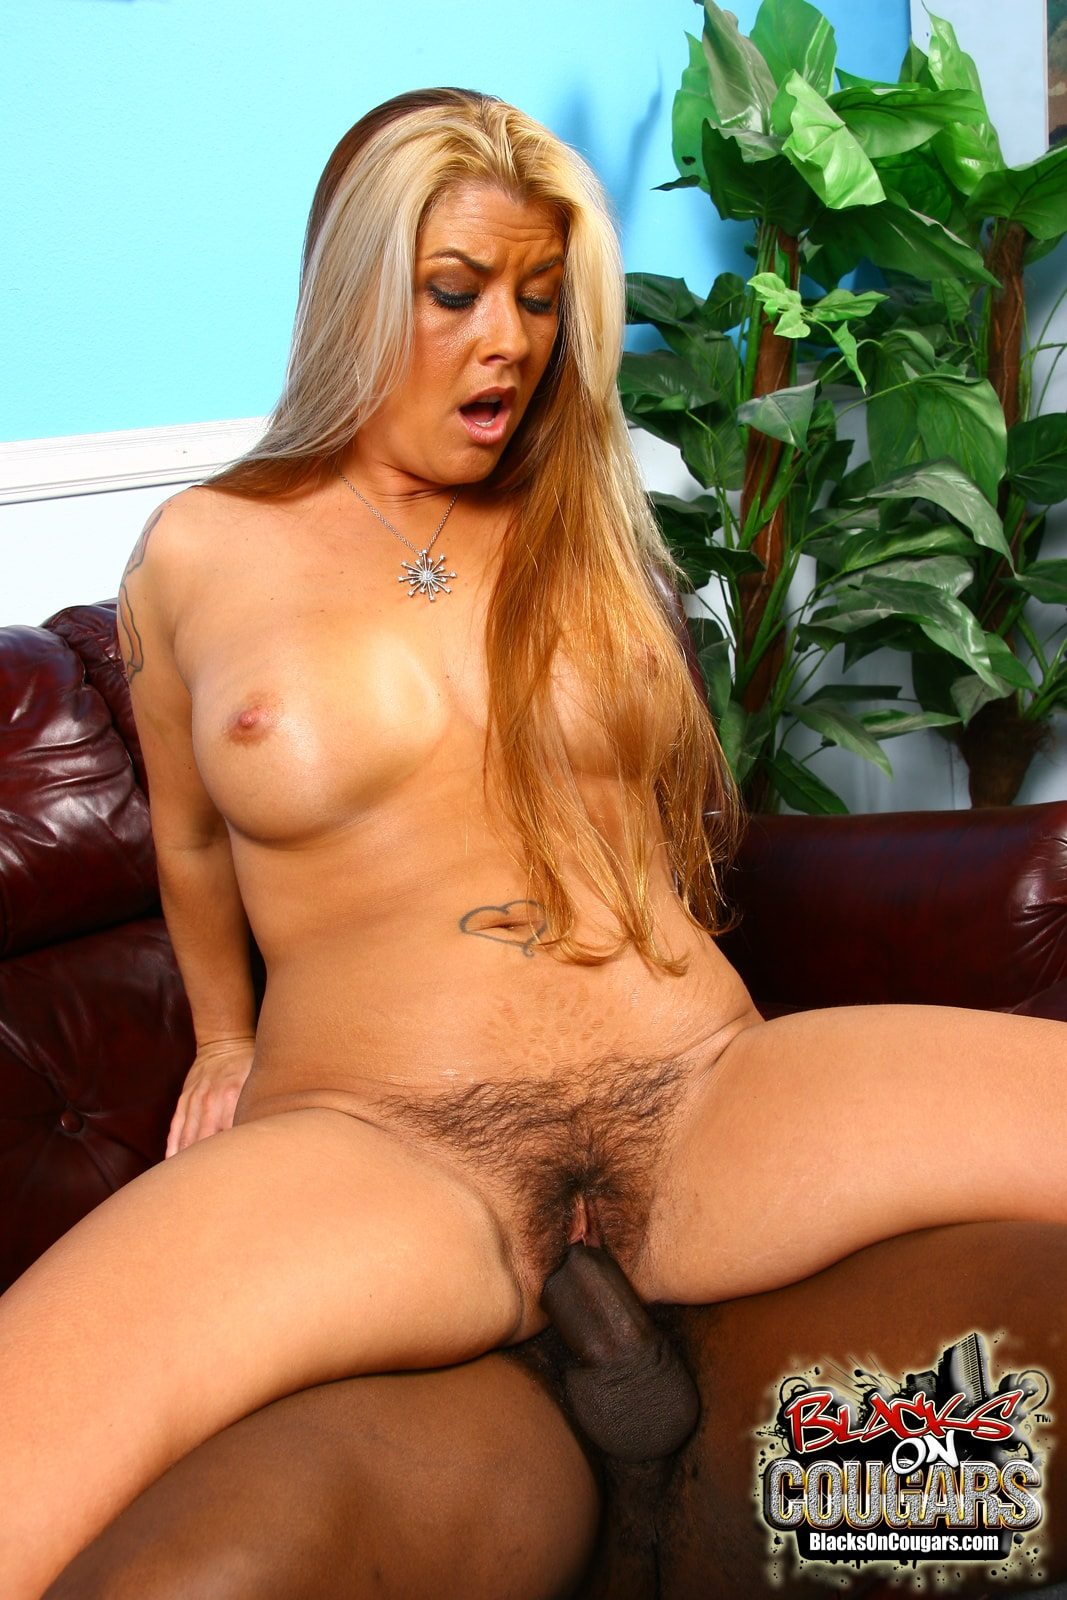 Dogfart '- Blacks On Cougars' starring Joclyn Stone (Photo 27)